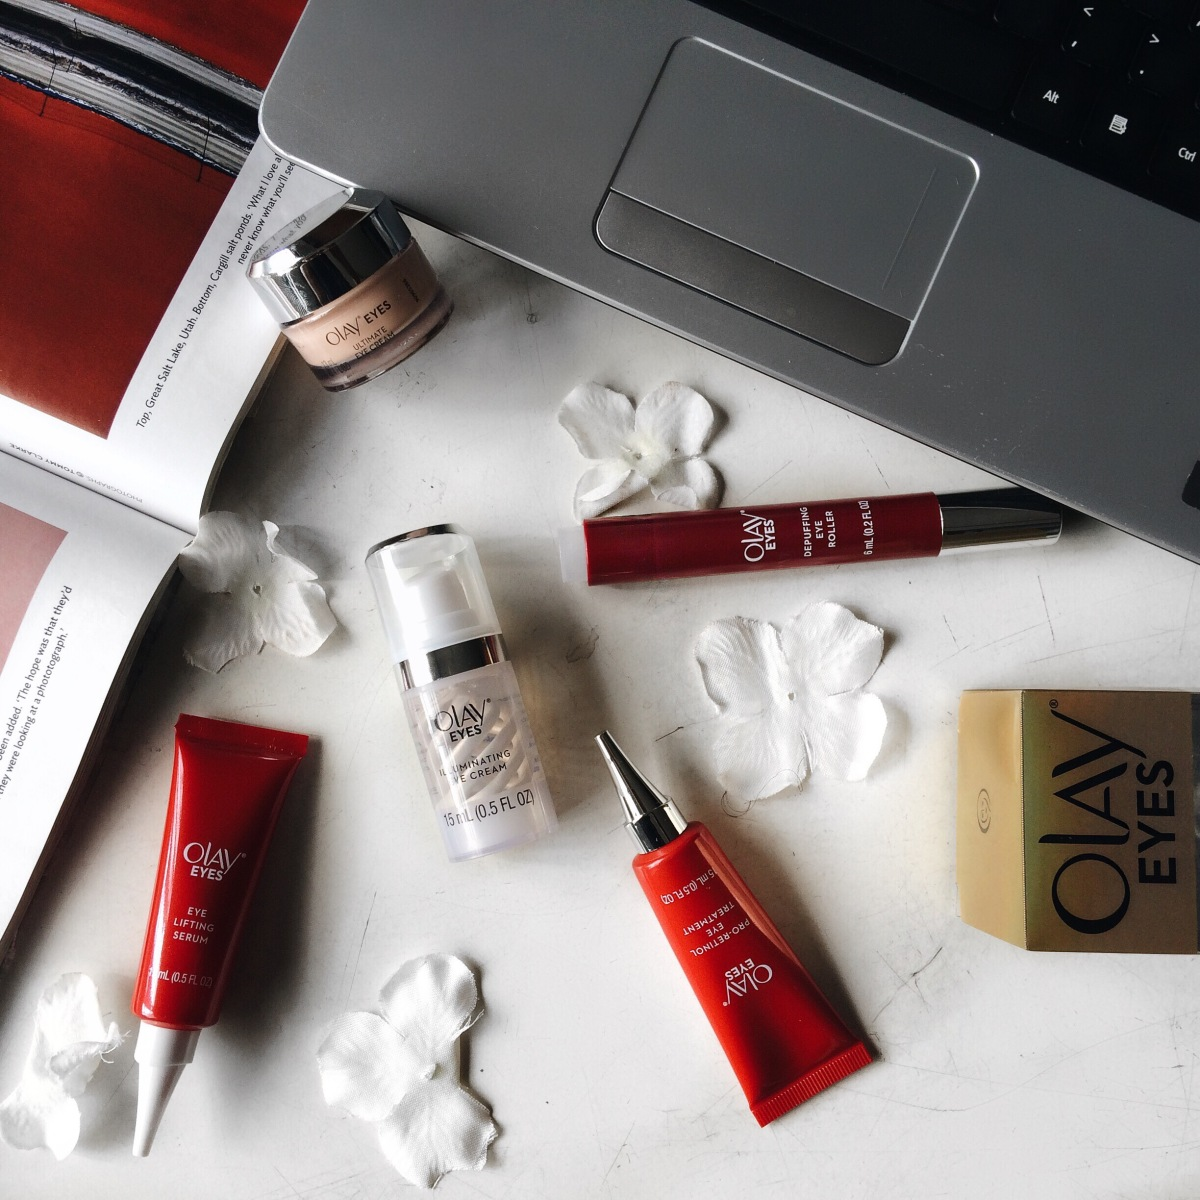 New Skincare Routine Featuring The New OLAY Eyes Collection